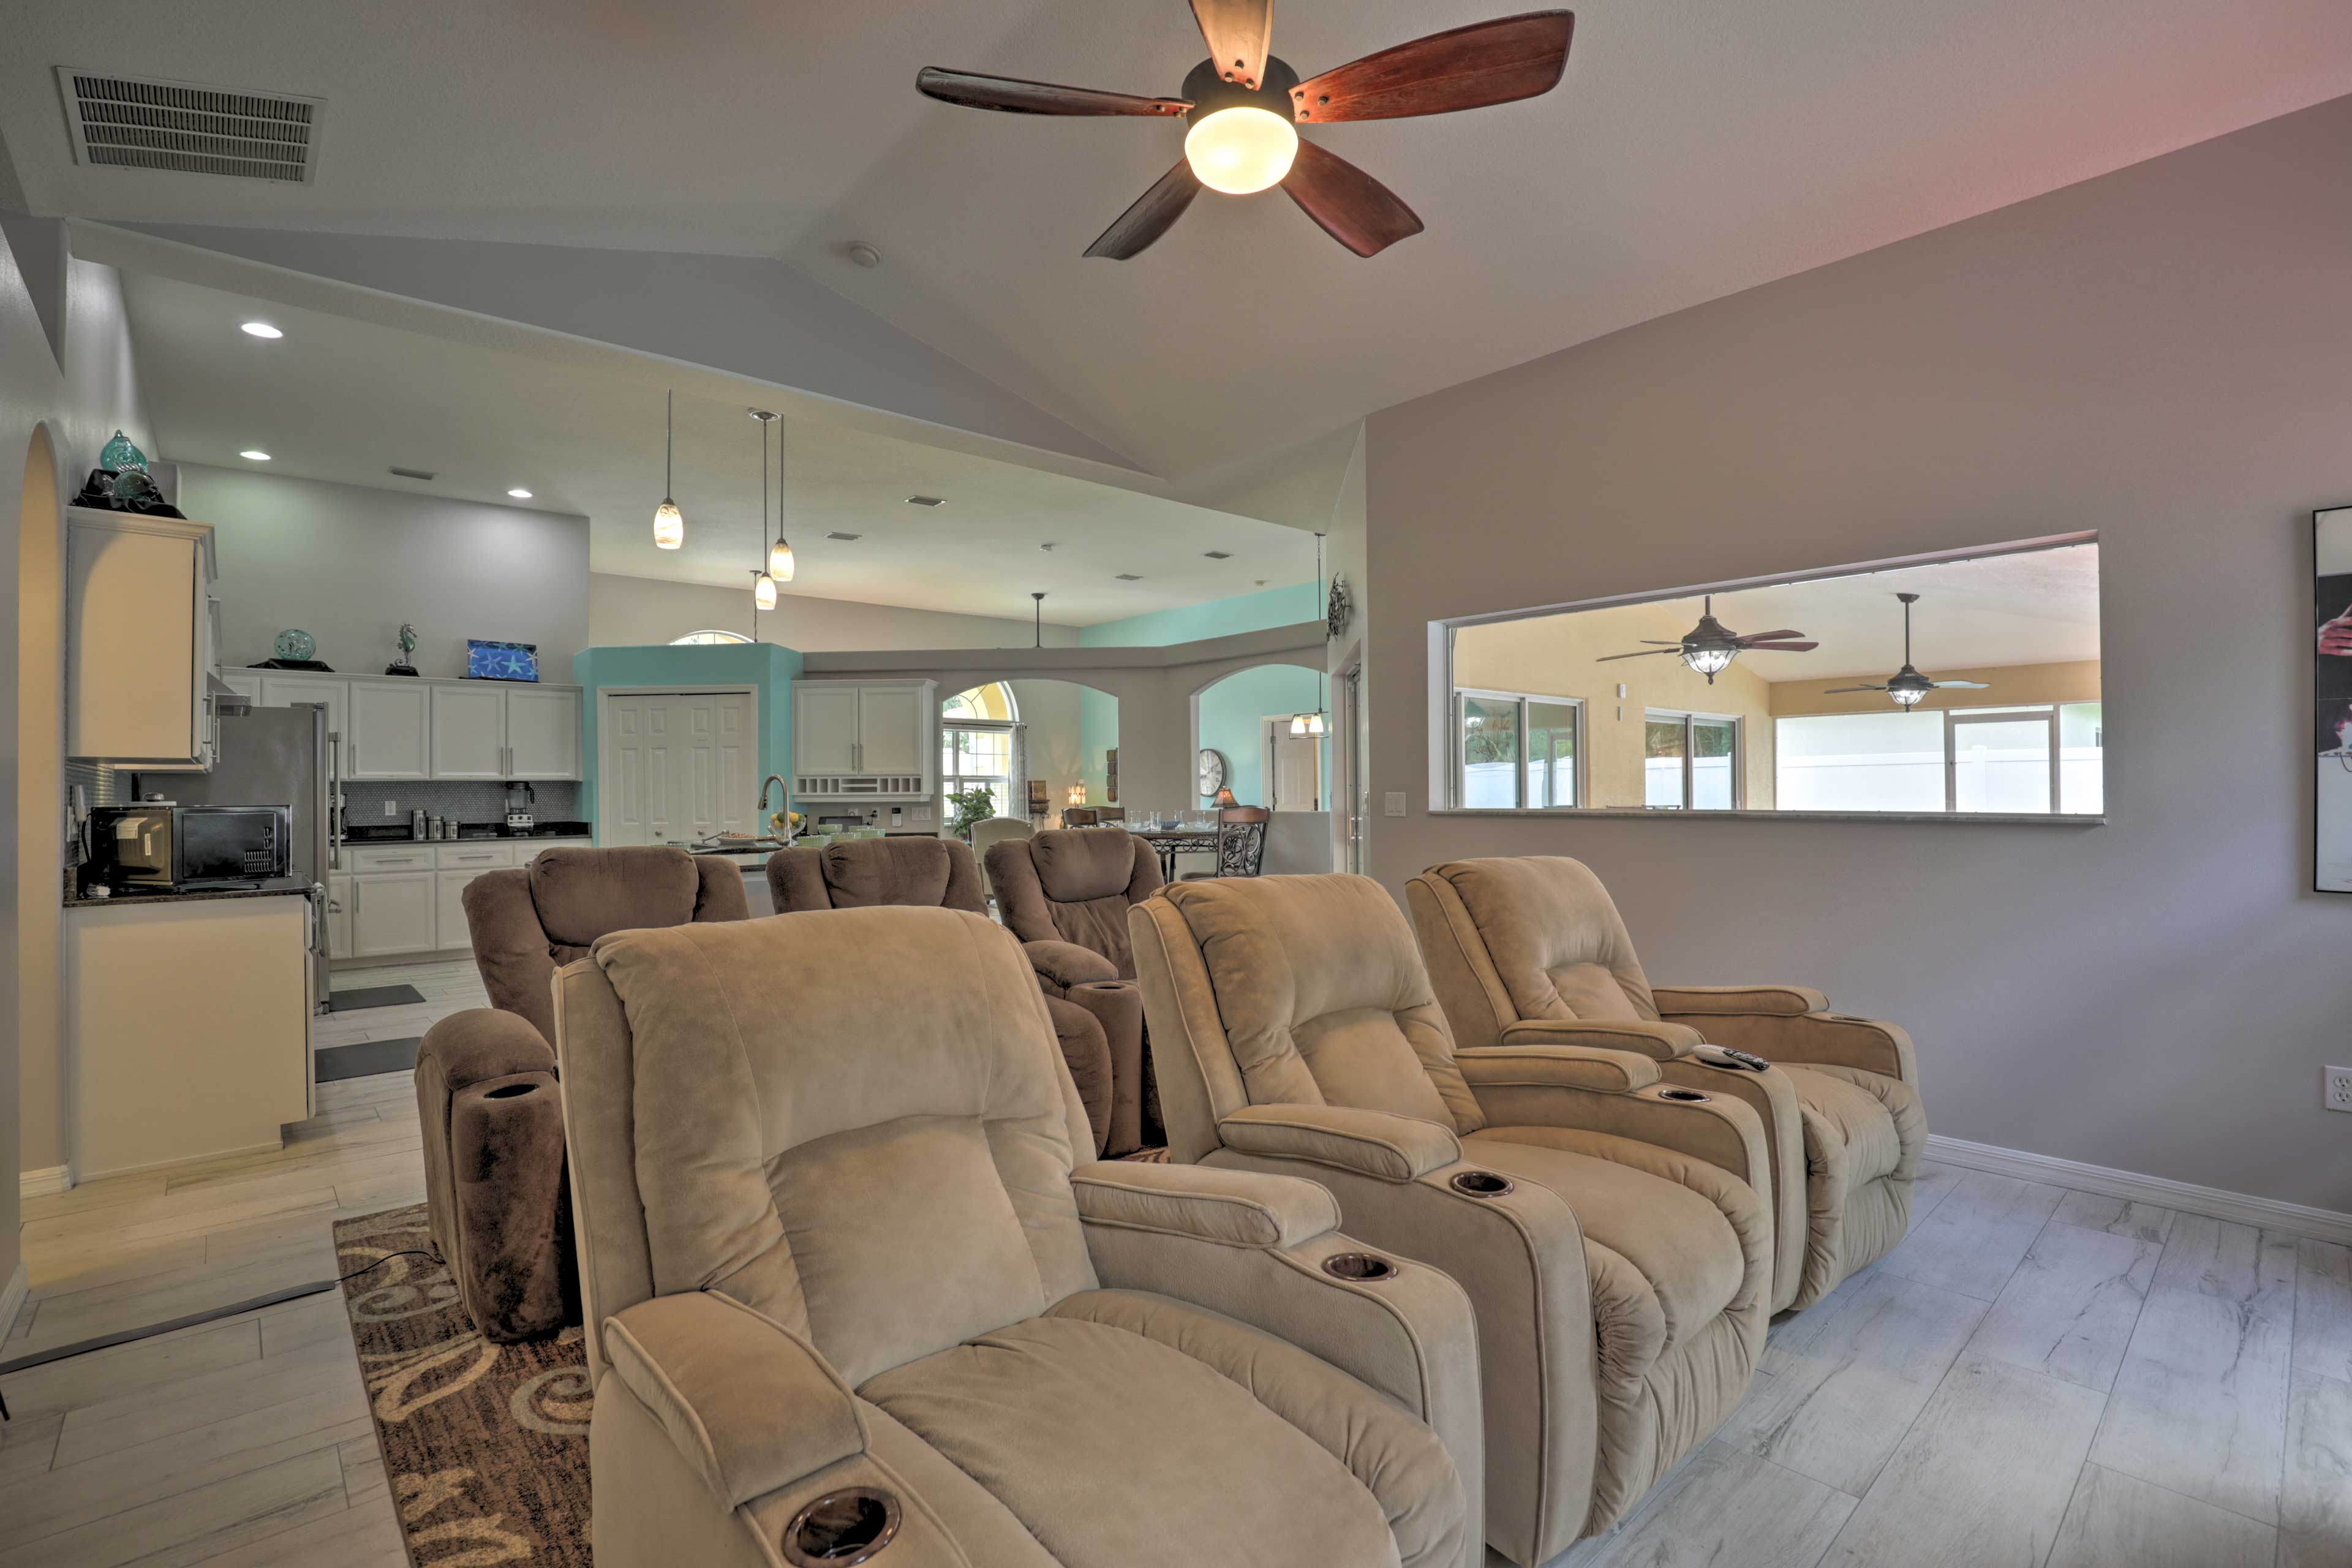 Enjoy the comfort of the electric reclining chairs.